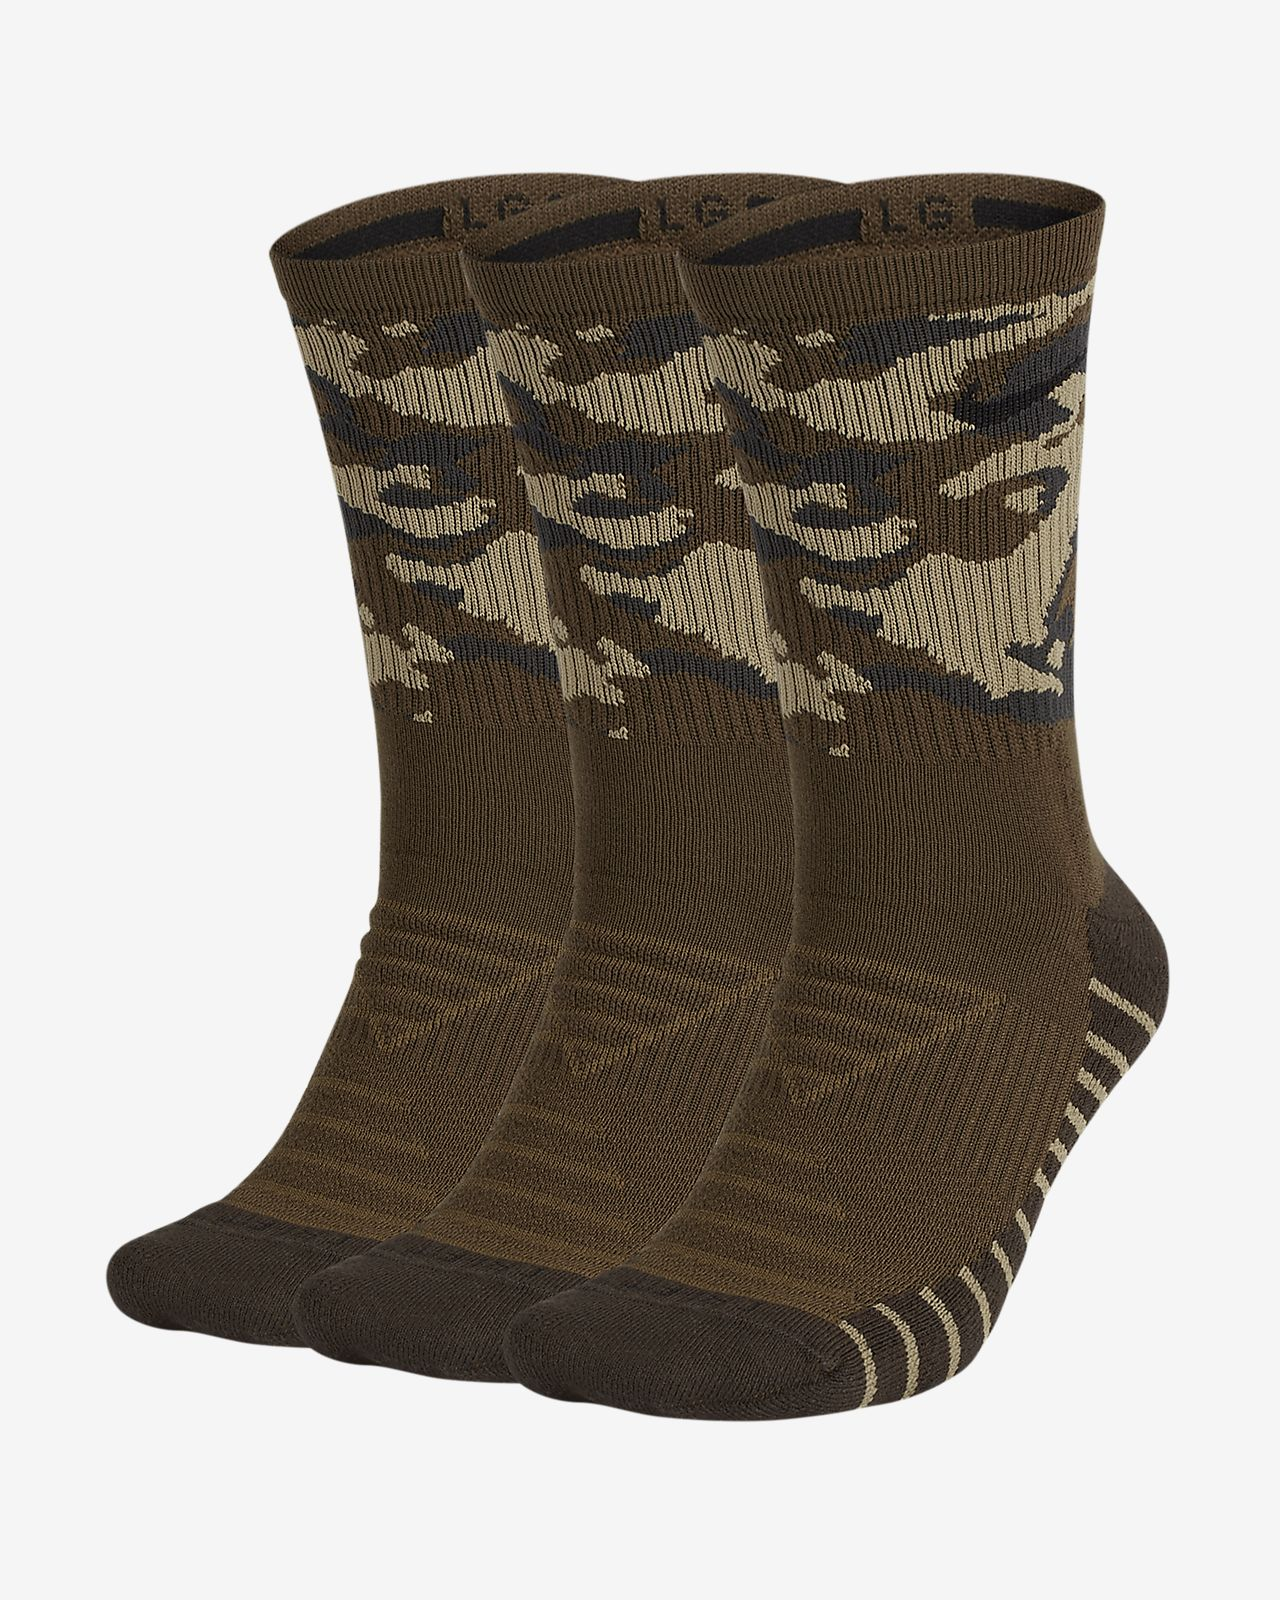 Chaussettes de training camouflage mi-mollet Nike Everyday Max Cushion (3 paires)